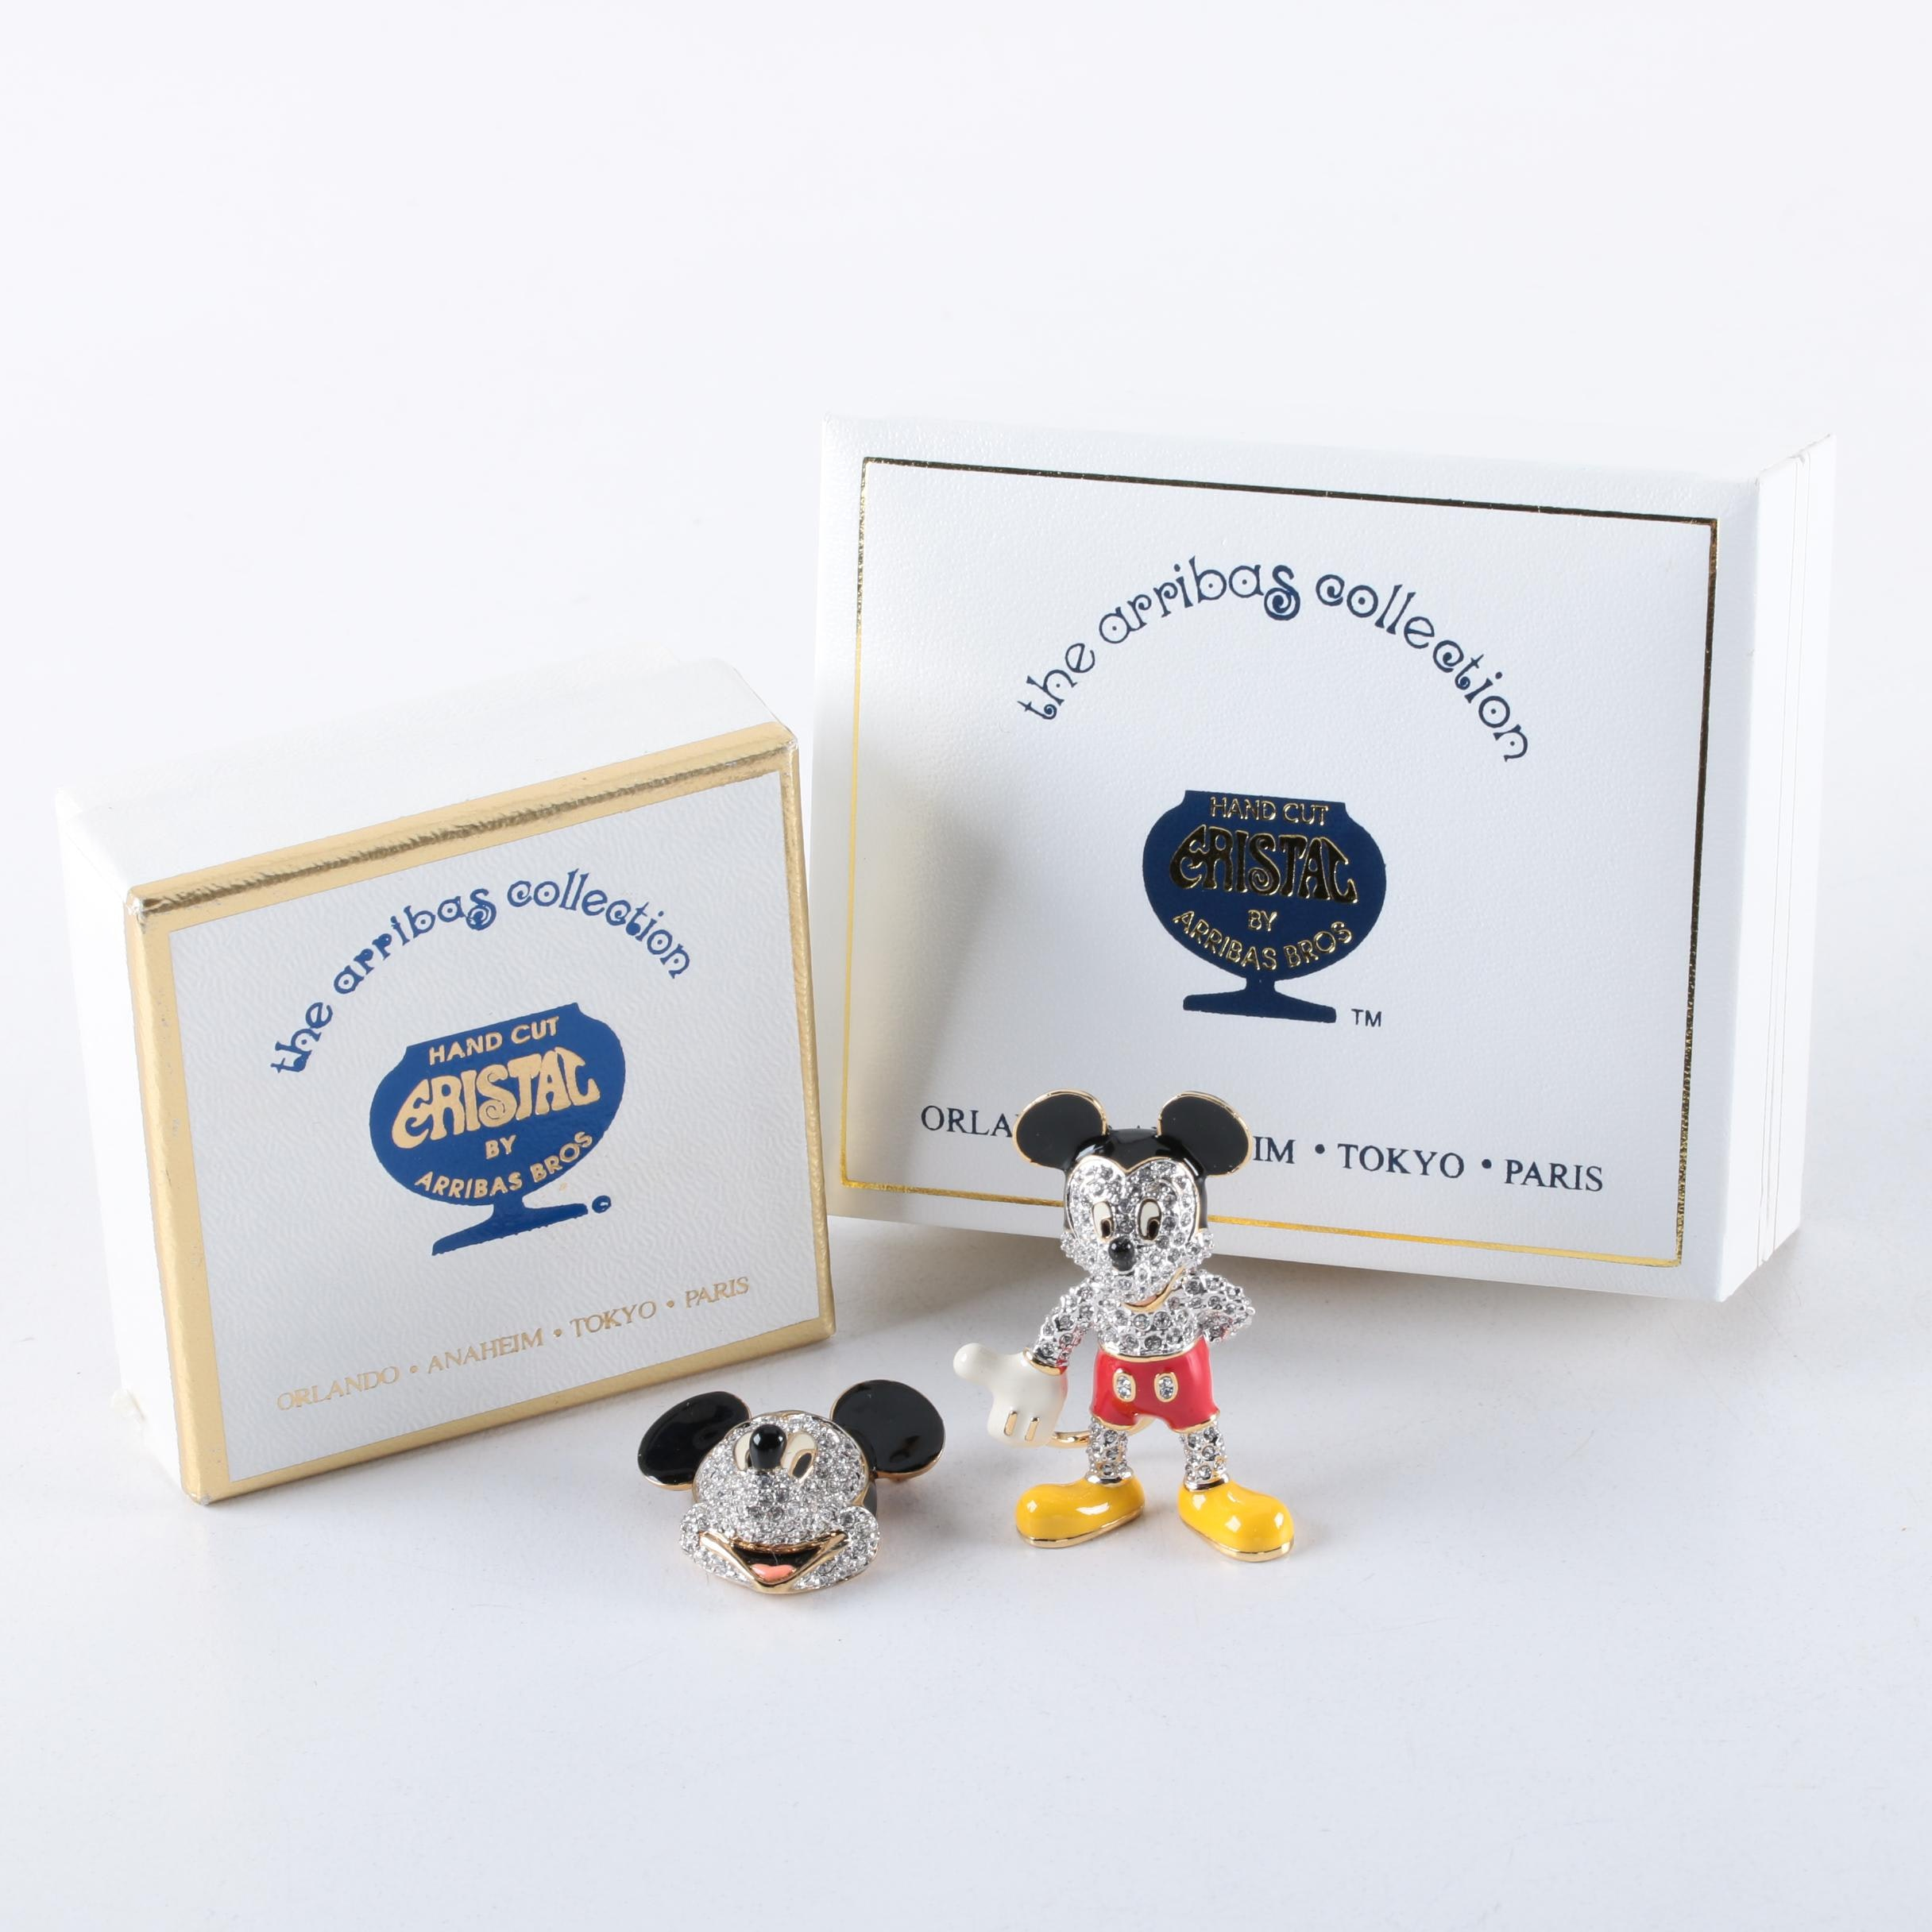 Arribas Bros. Disney Jeweled Mickey Mouse Figurine and Brooch